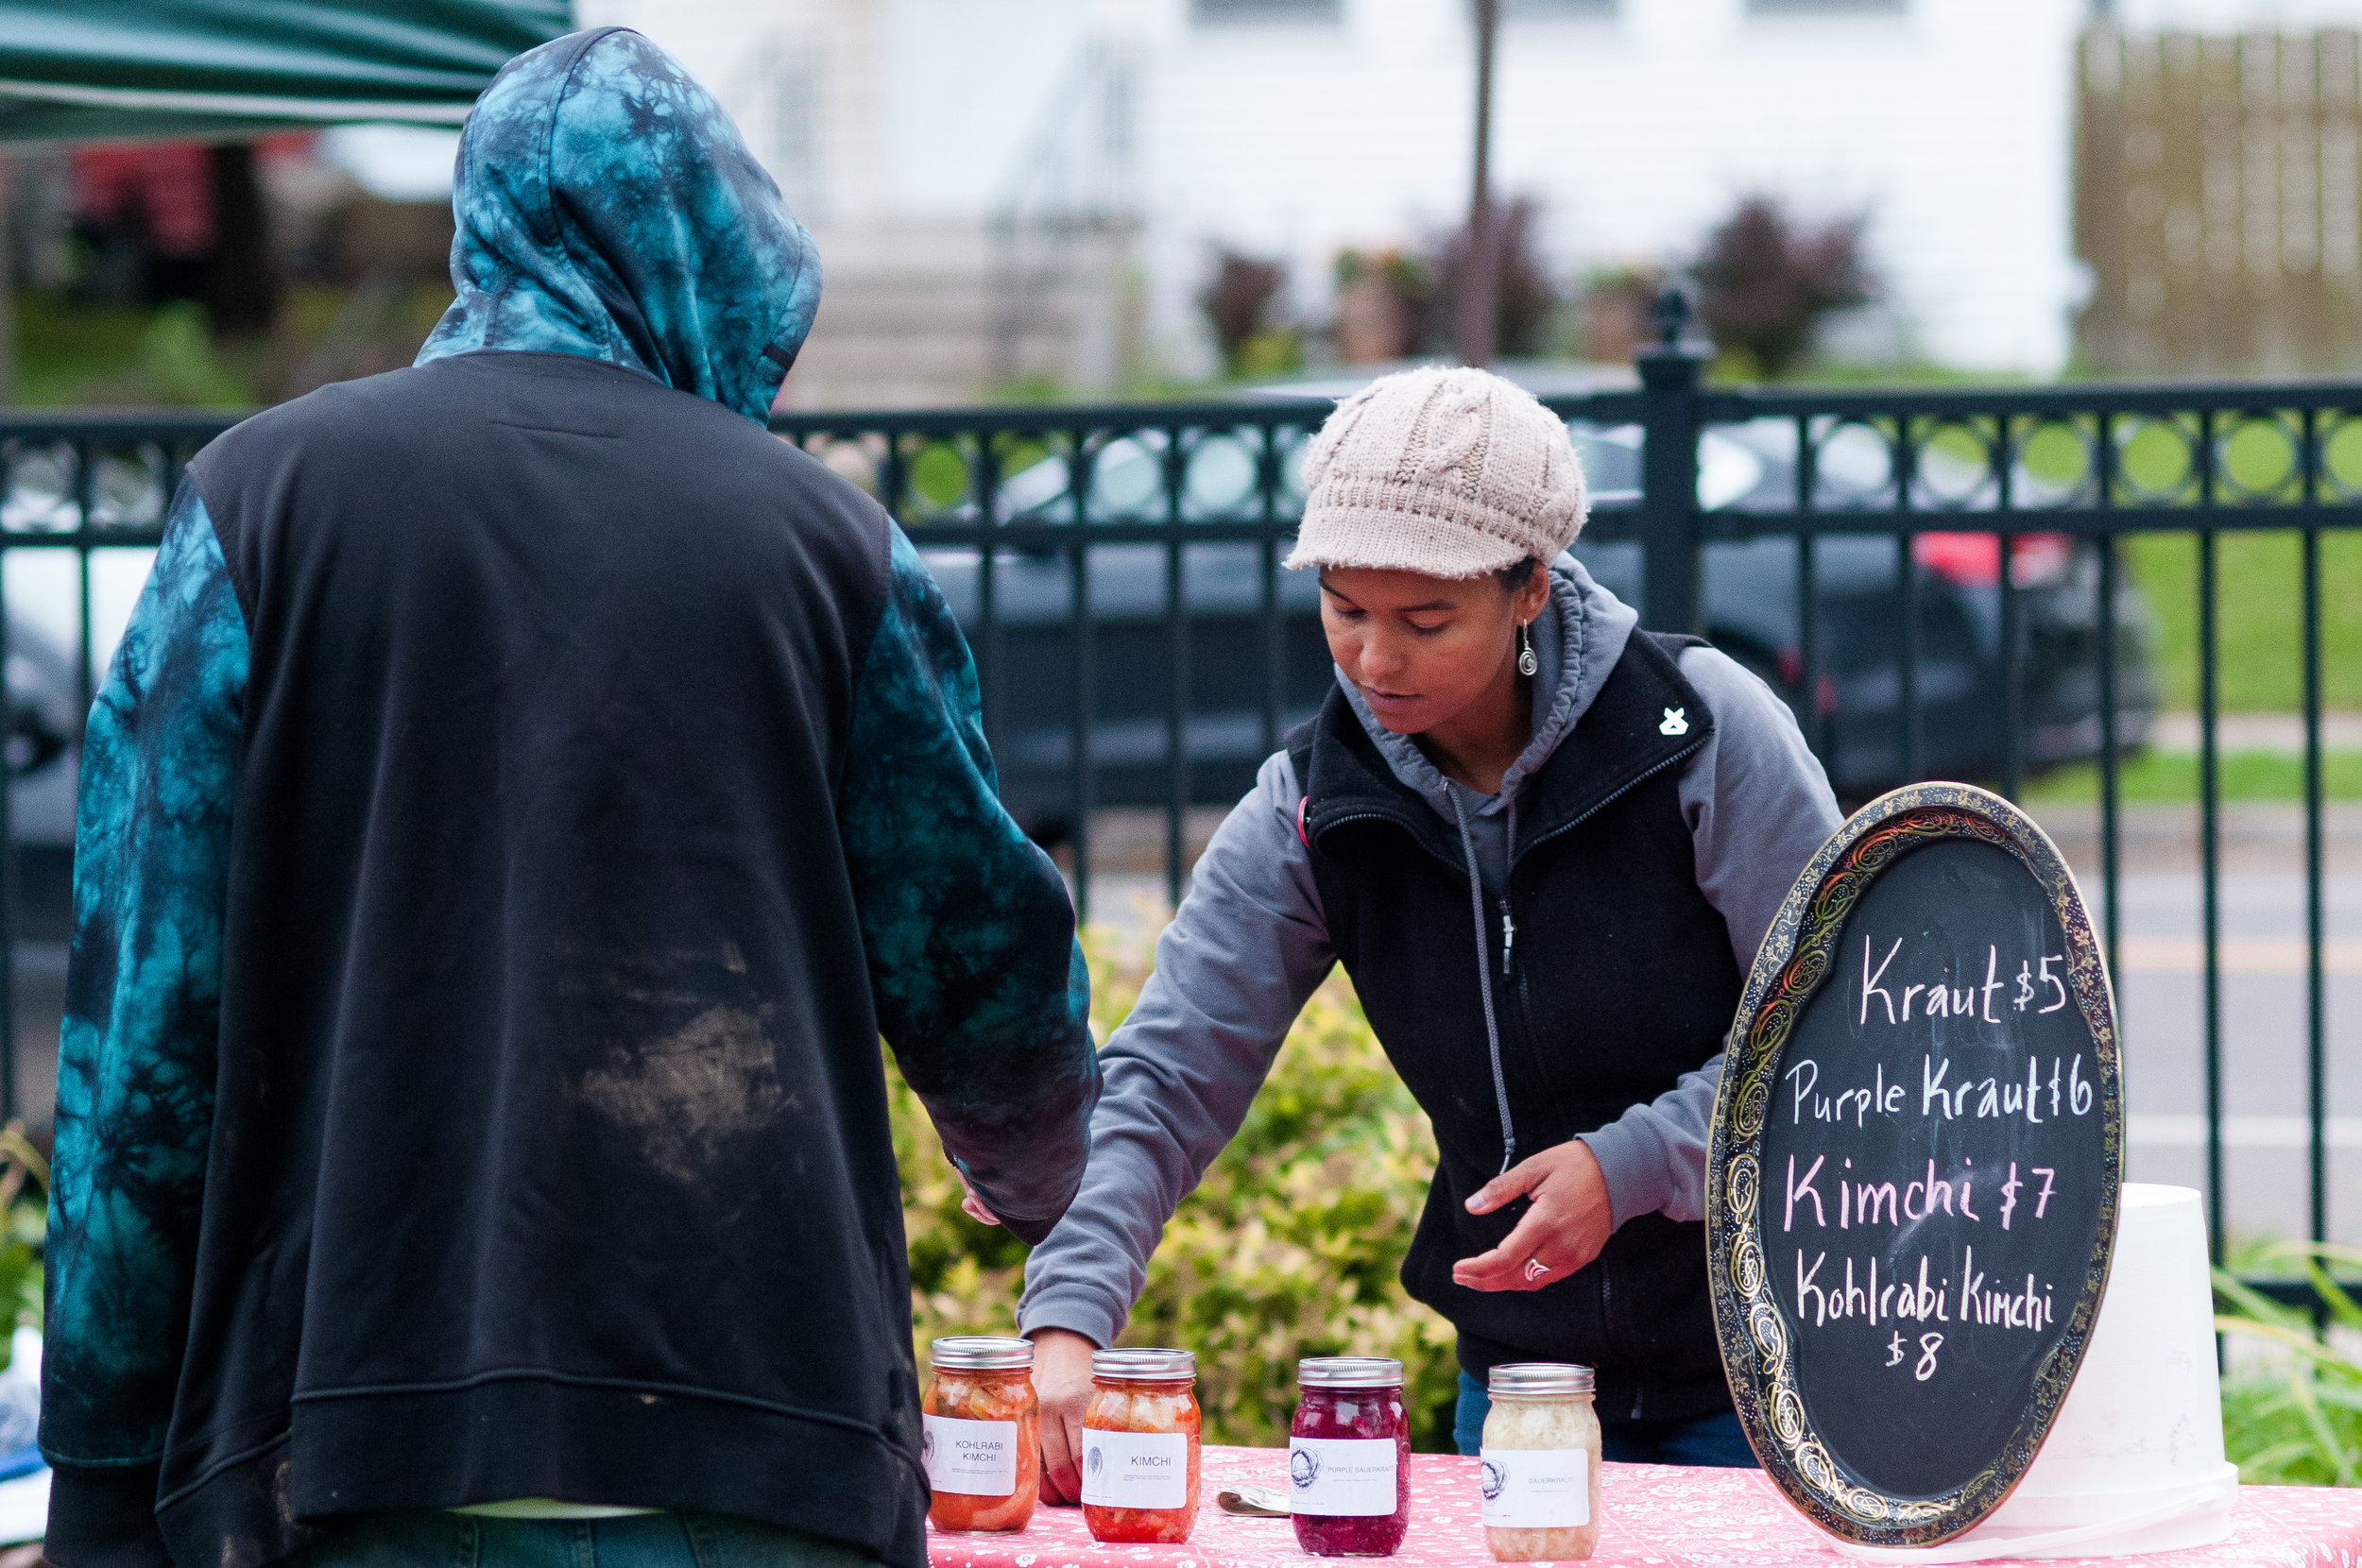 Members of the Lincoln Park community have easier access to a wide range of affordable foods. Photo by Alex Ganeev.